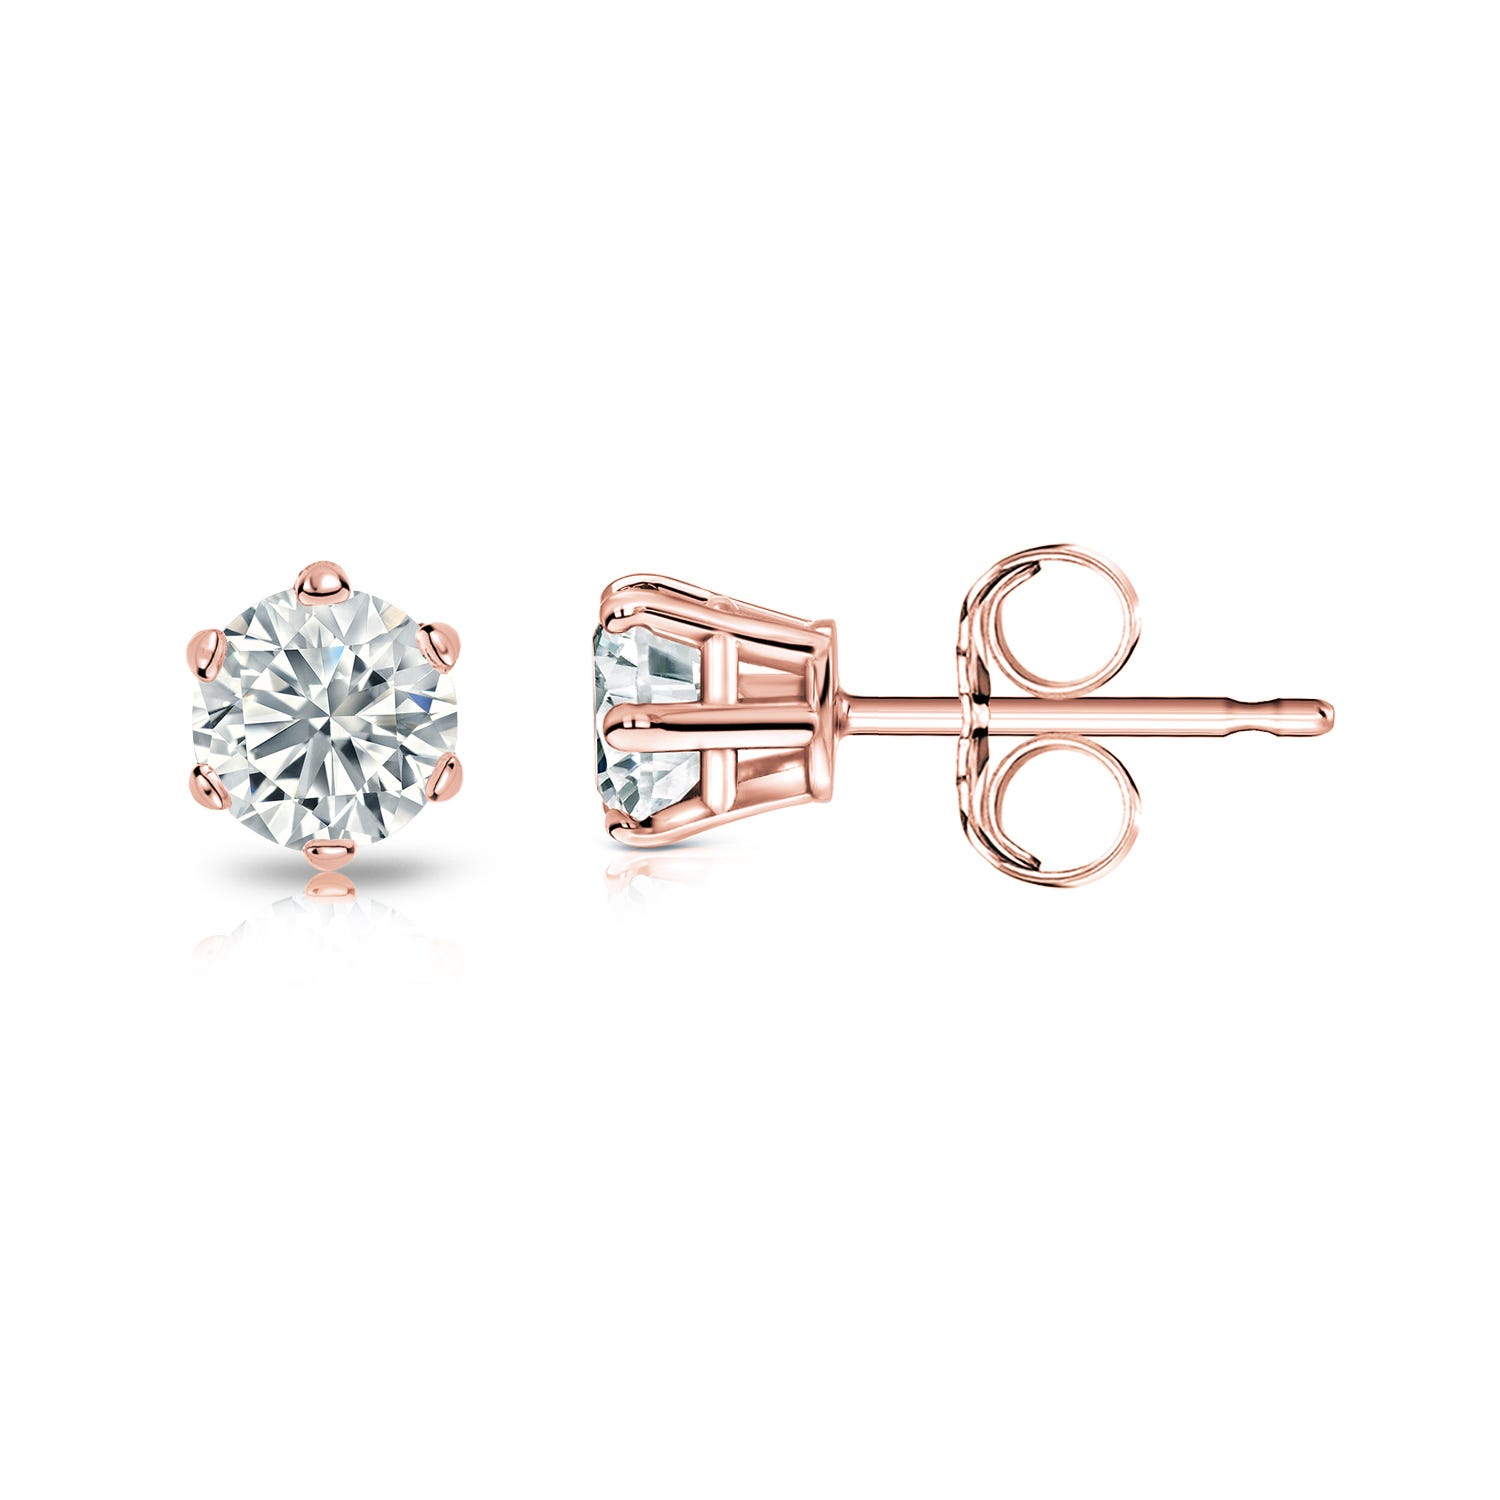 Round Diamond 1/5ctw. (IJ-SI2) Solitaire Stud 6-Prong Earrings in 14K Rose Gold